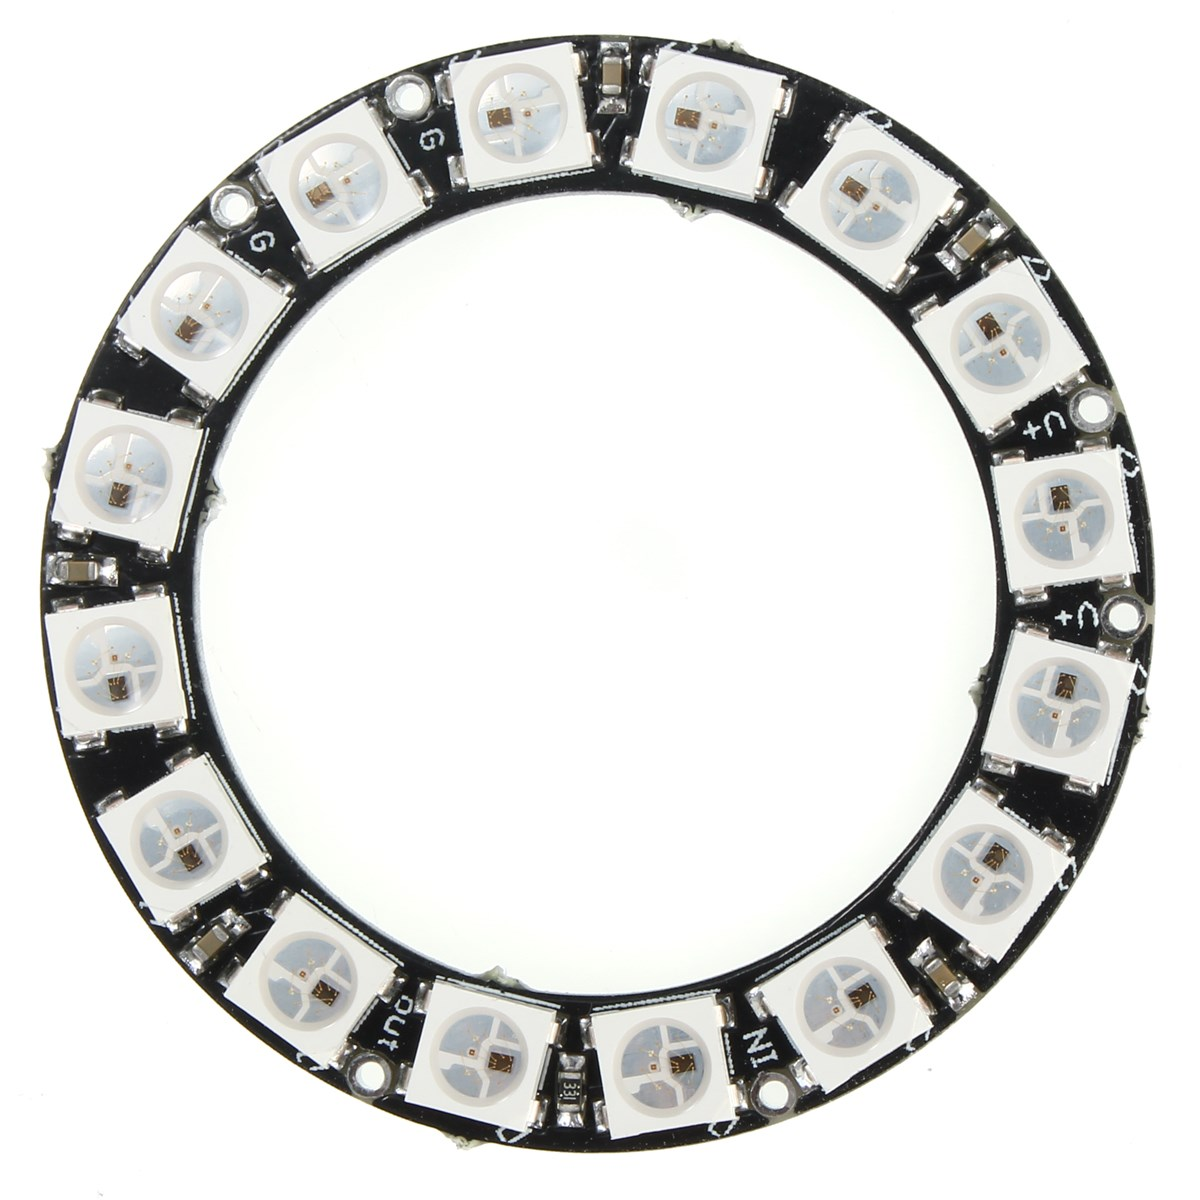 Best Promotion LED Ring 16x WS2812B 5050 RGB With Integrated Drivers(China (Mainland))